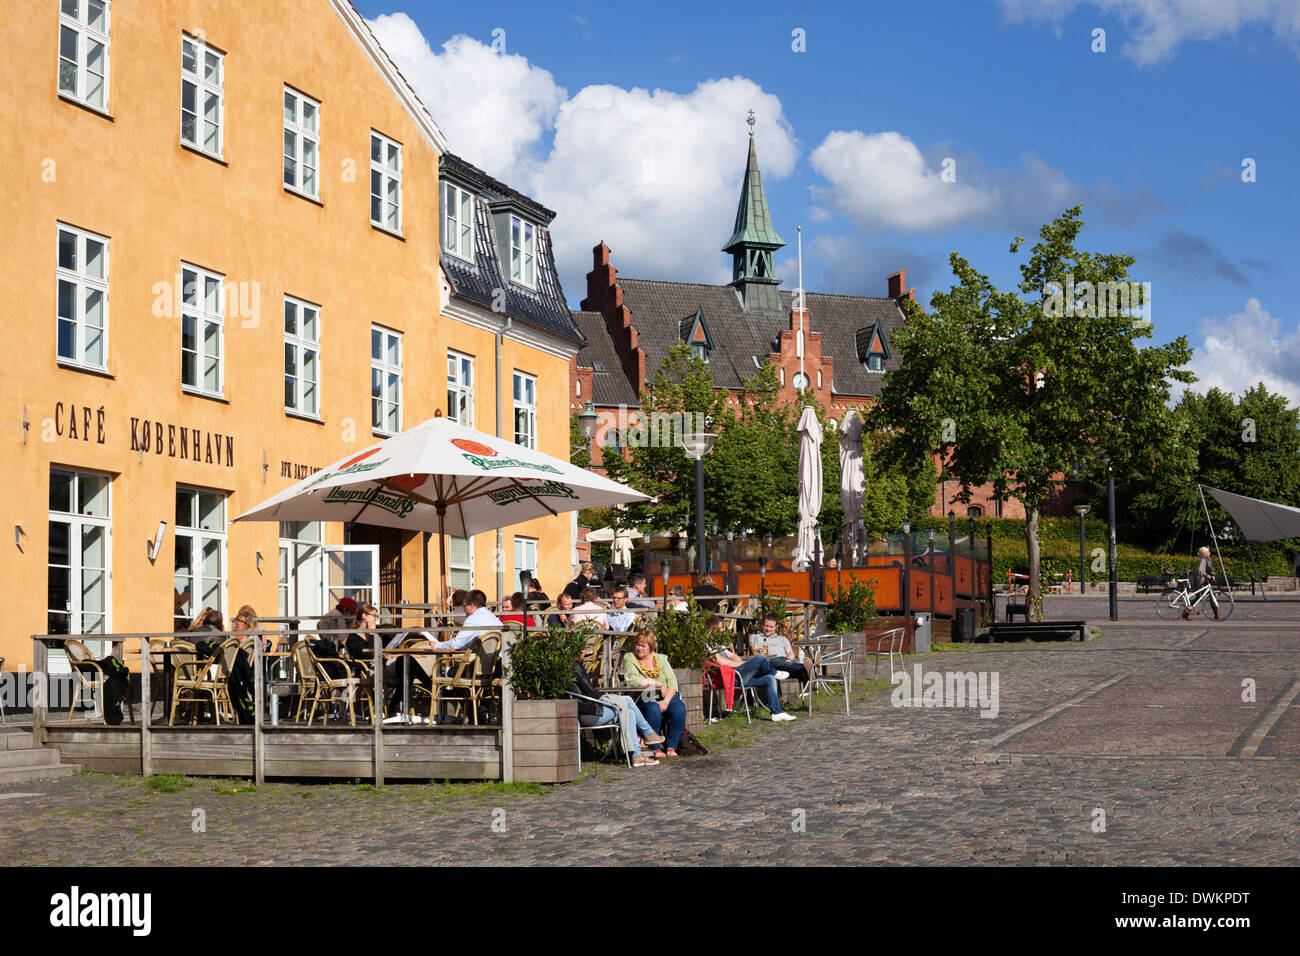 Cafe in Torvet square, Hillerod, Zealand, Denmark, Europe - Stock Image